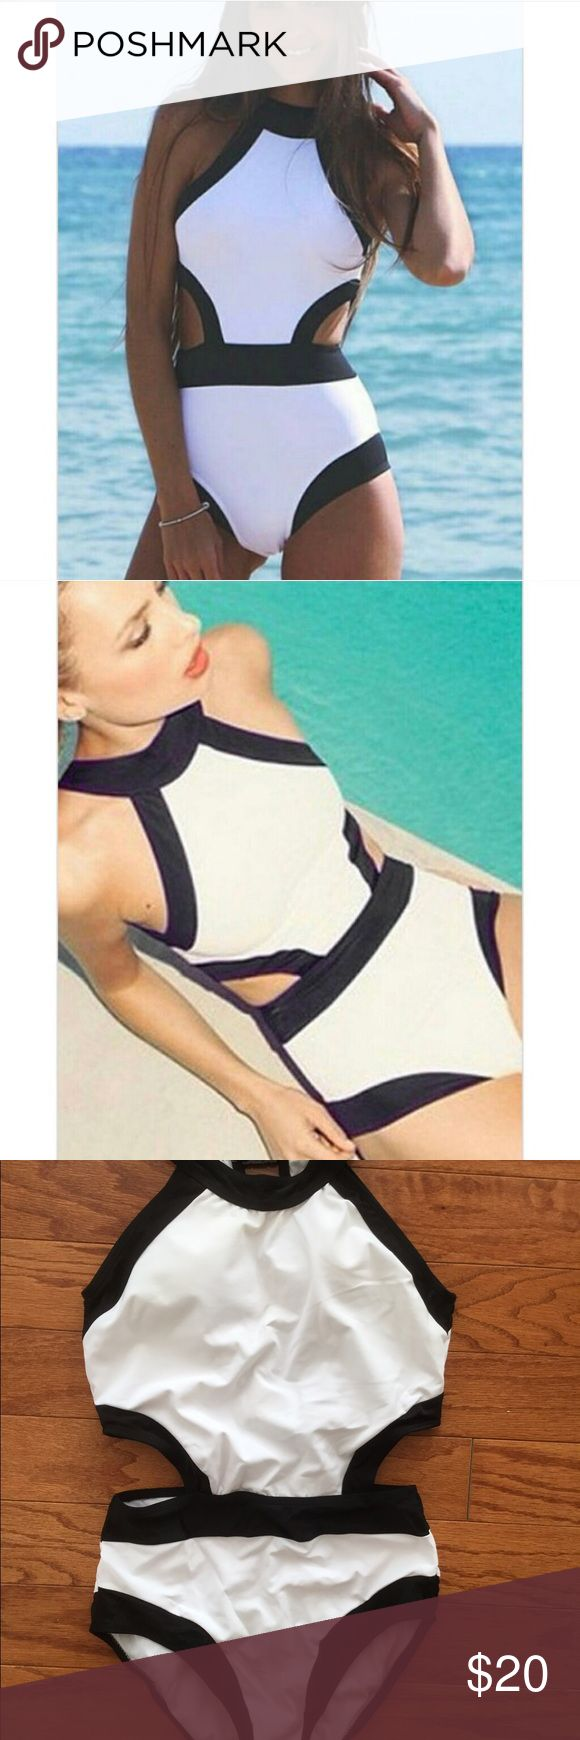 Black and white one piece swim suit One piece swimsuit with cut out sides. Super cute and flattering. Bathing suit is so classy! ASOS Swim One Pieces